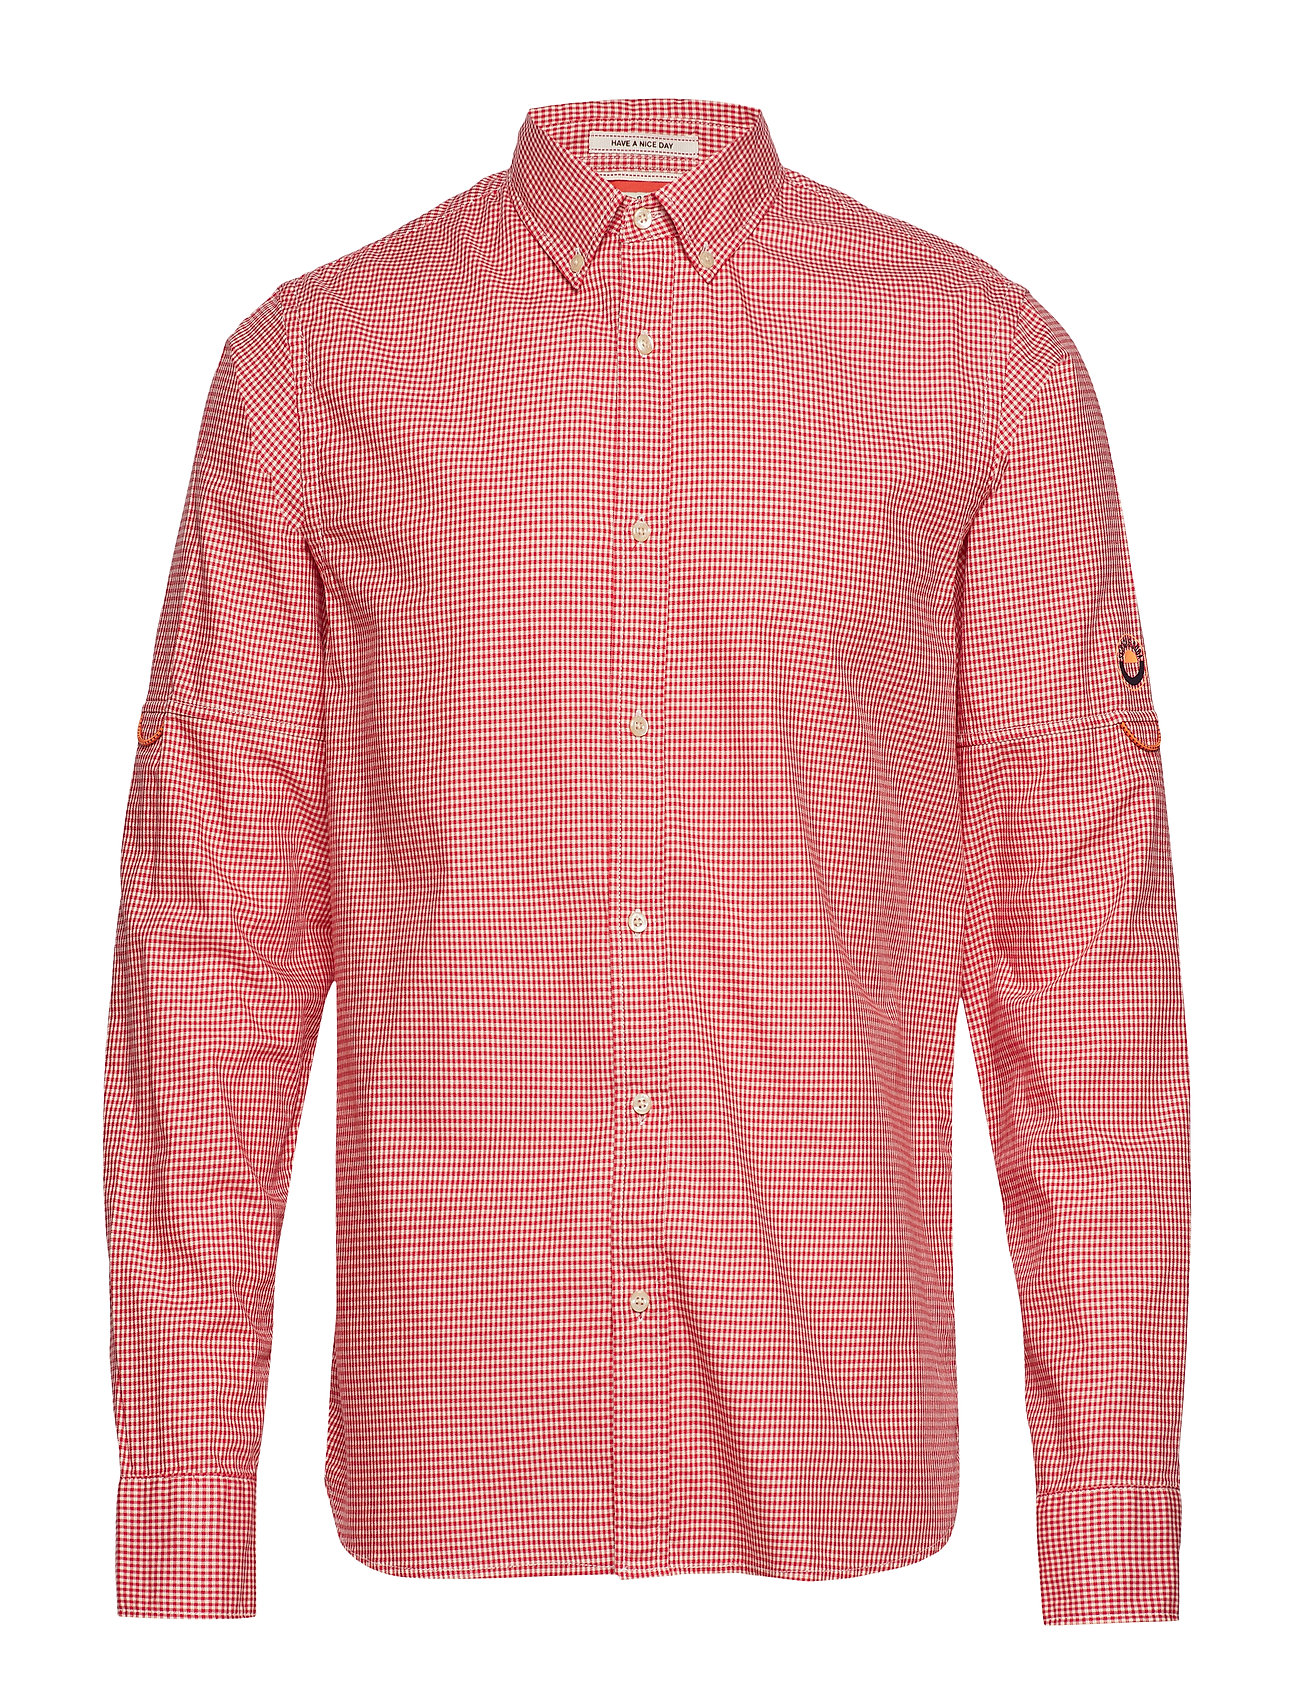 Scotch & Soda REGULAR FIT - Mini-check shirt with sleeve roll-up - COMBO A